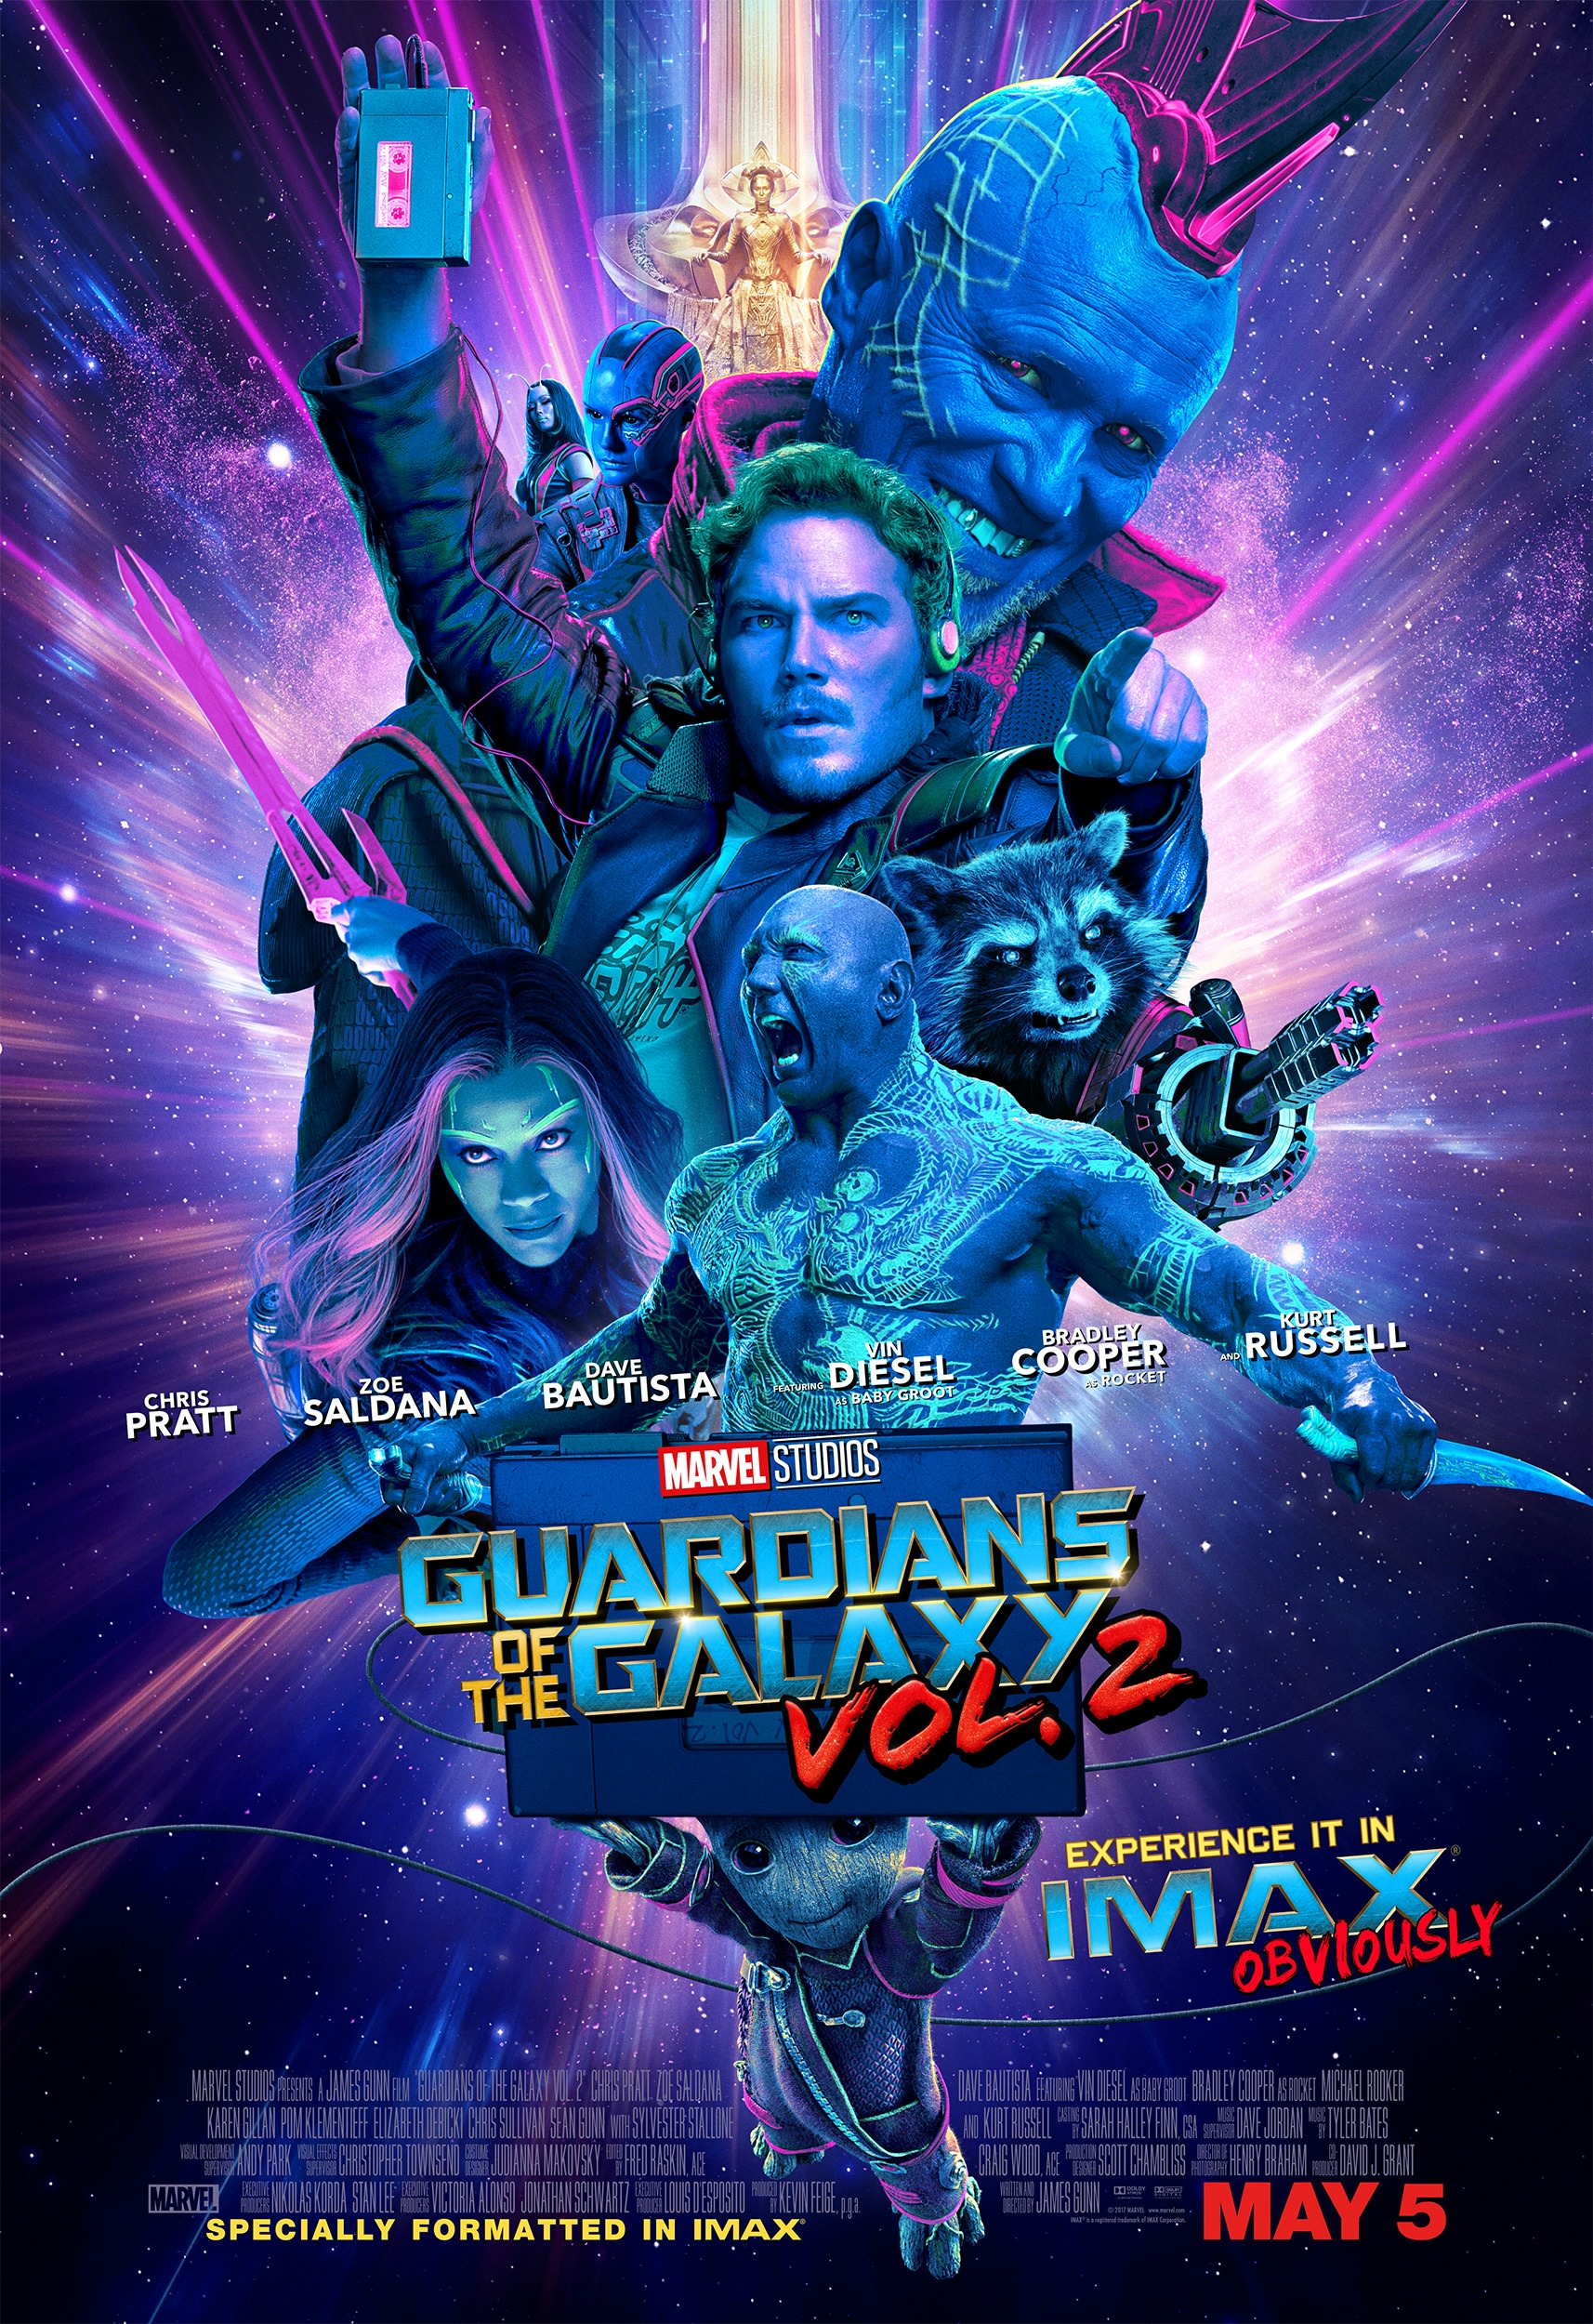 guardians of the galaxy vol 2 imax poster